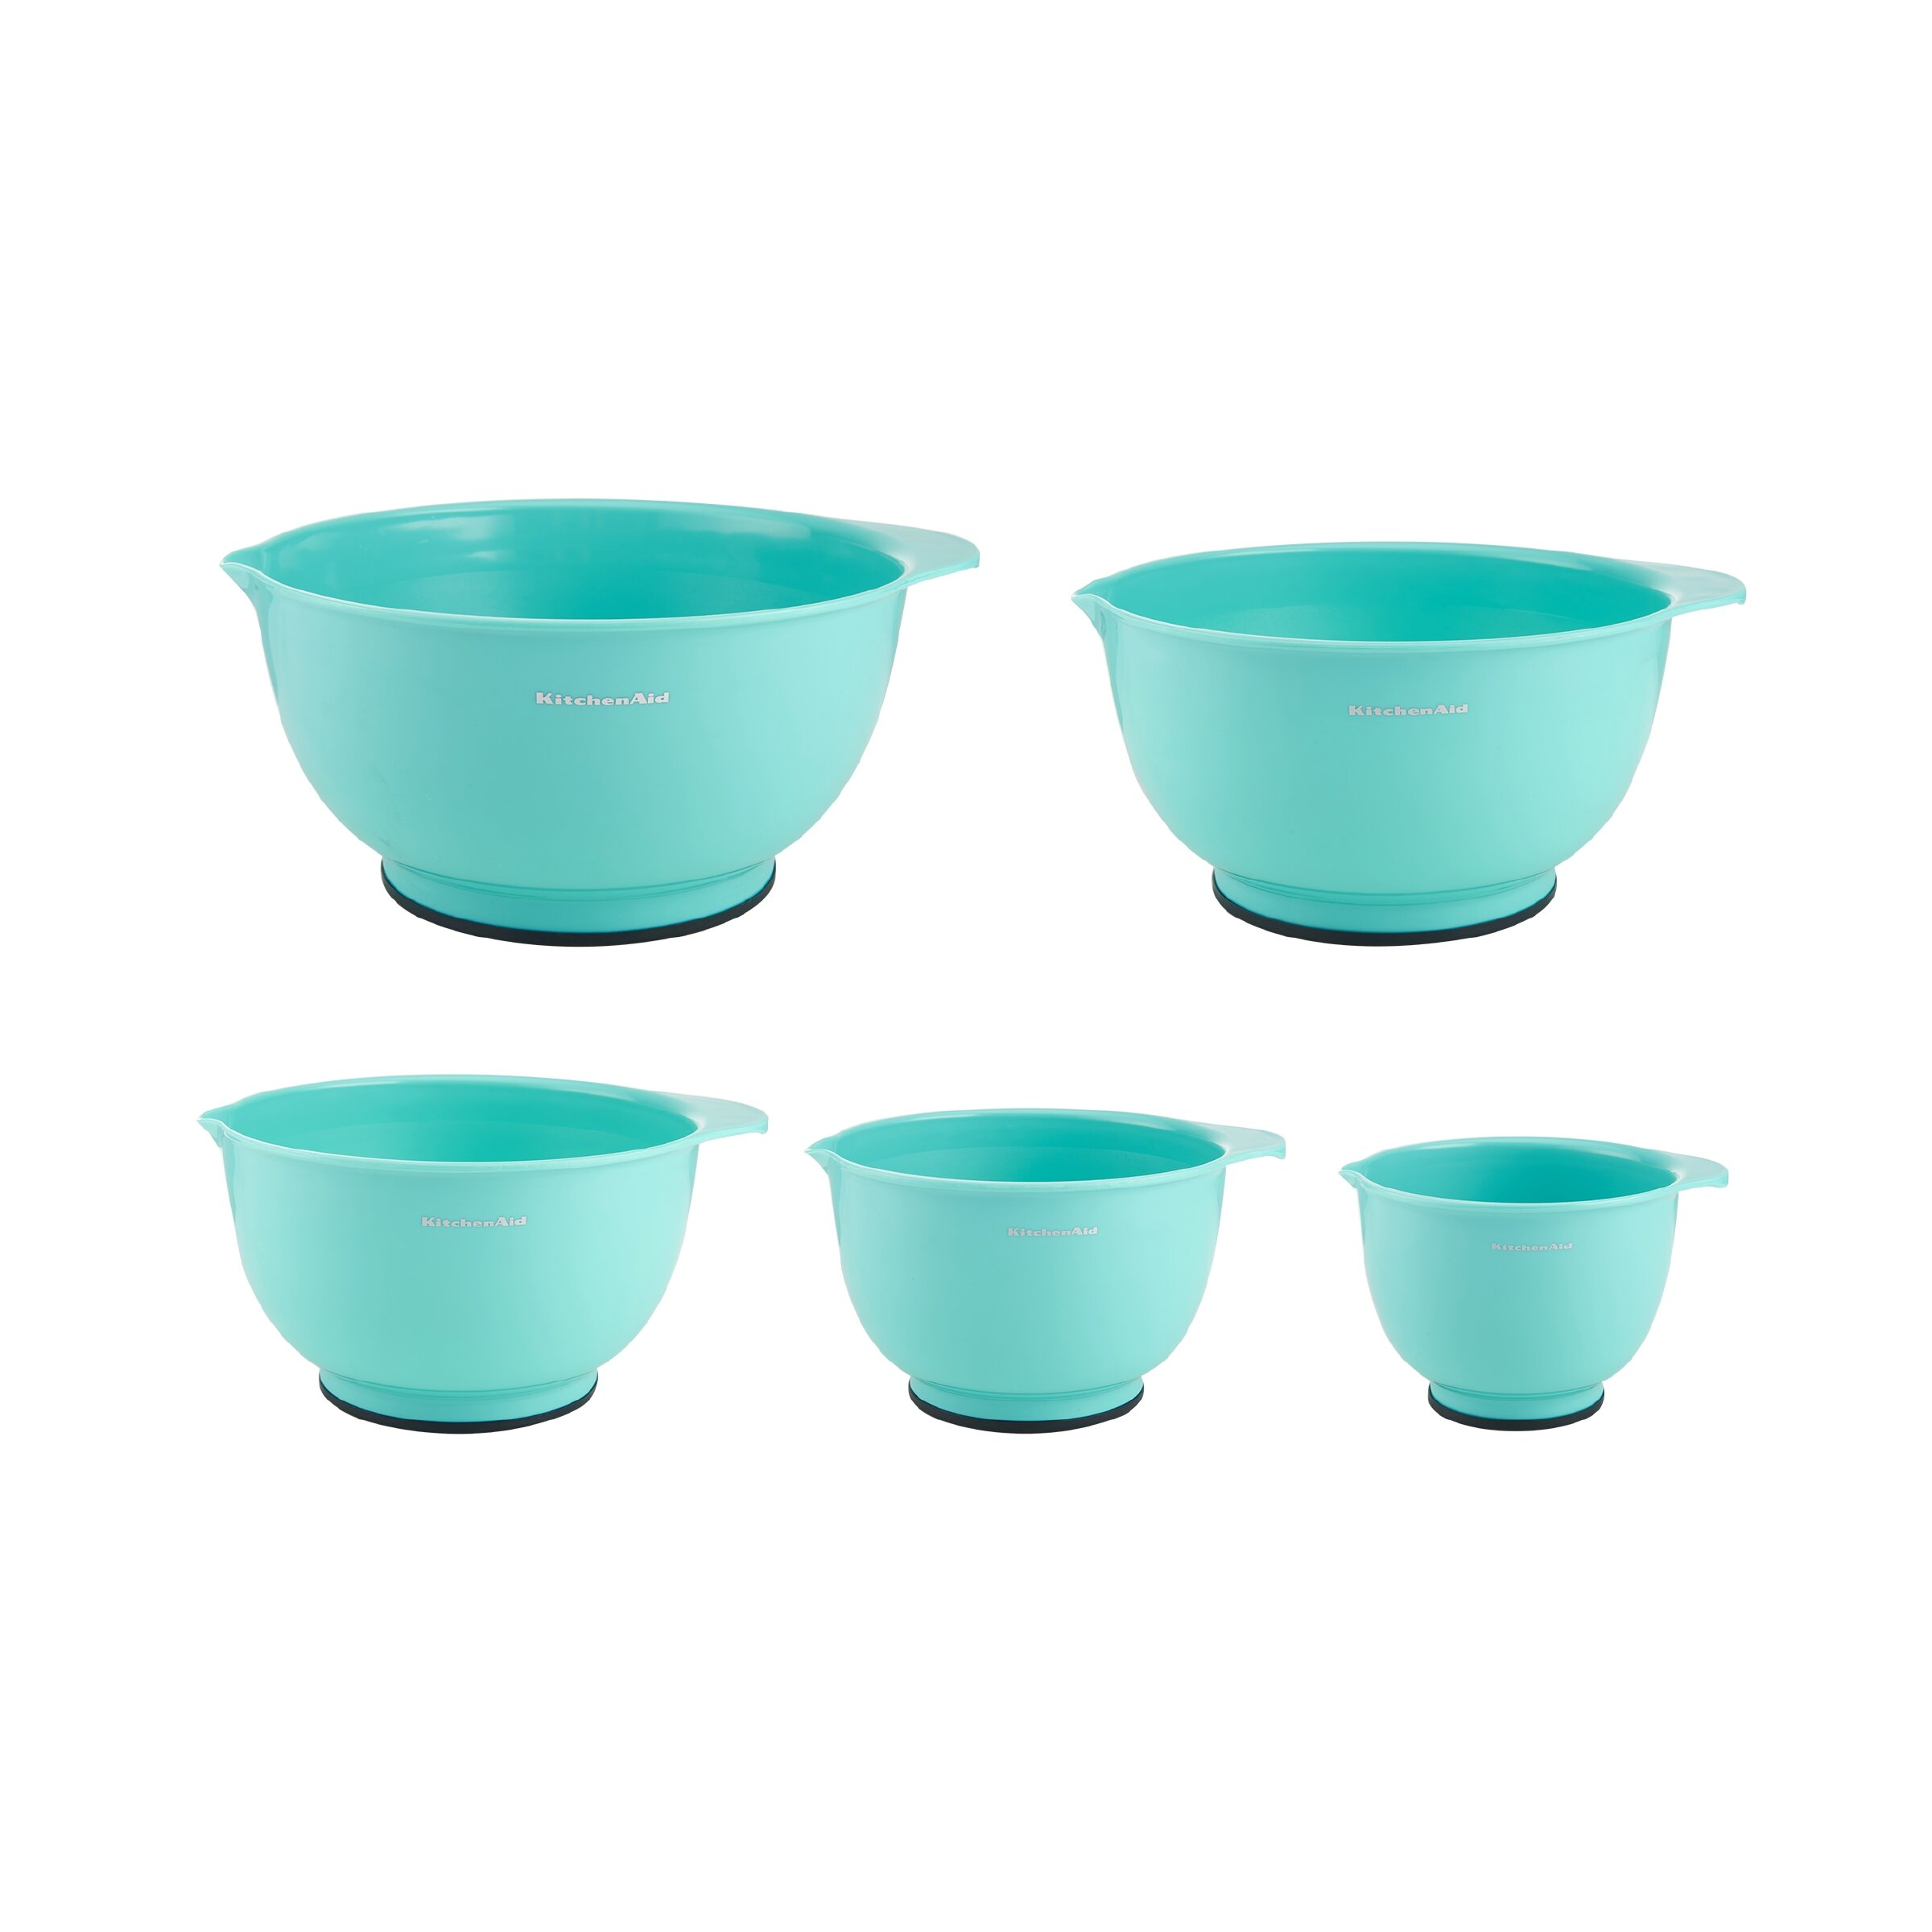 KitchenAid 5 Piece Plastic Mixing Bowl Set - KC178OSAQA | Wayfair